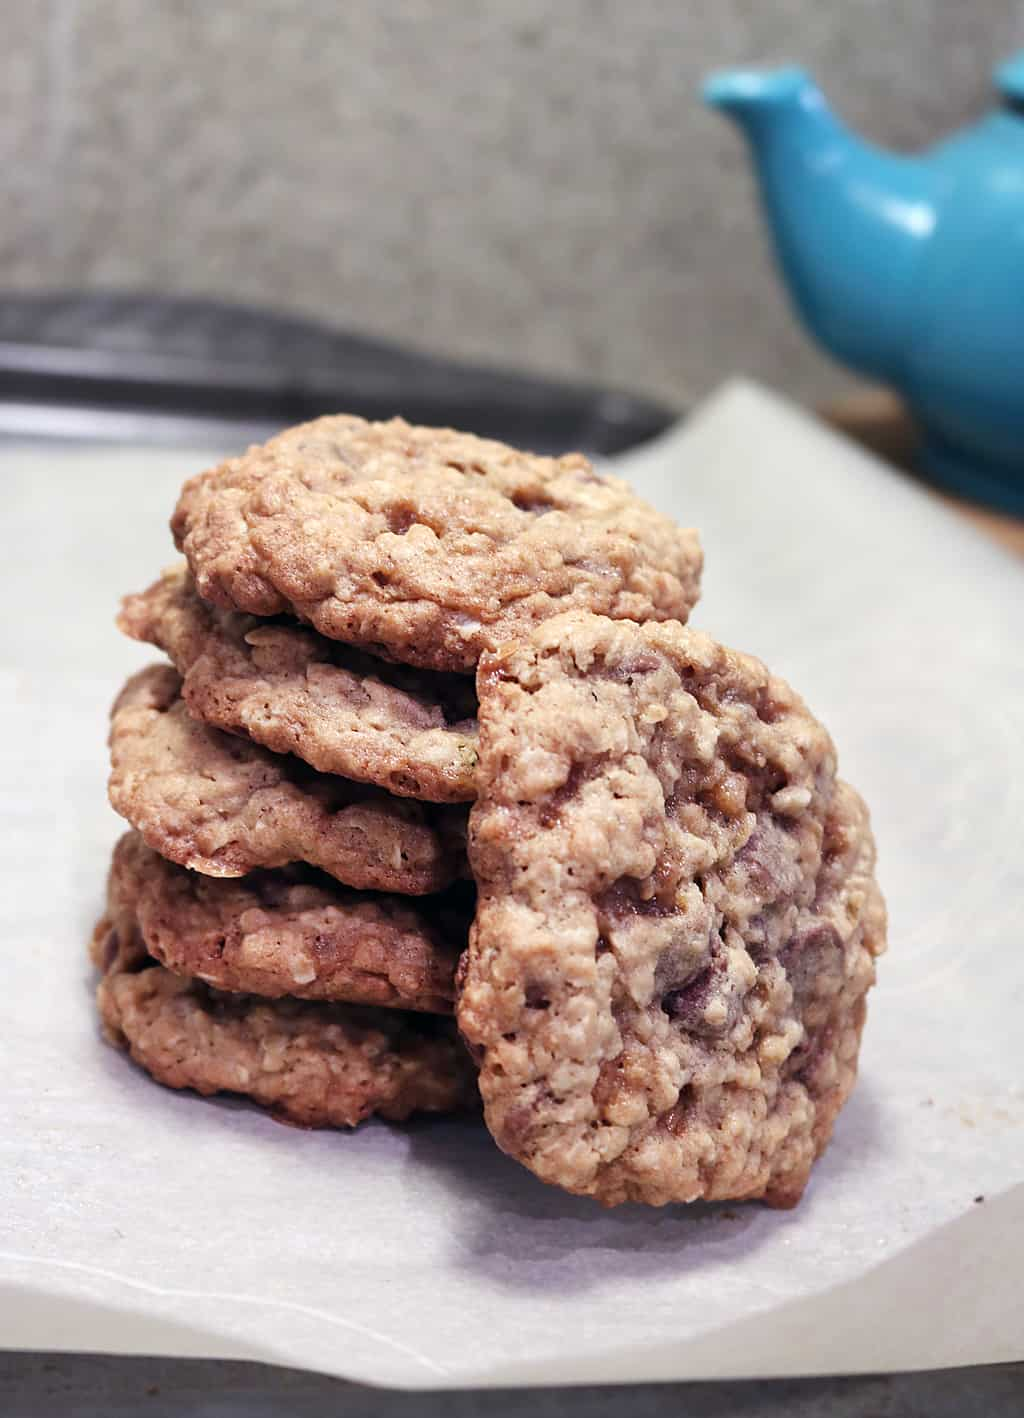 The Oatmeal Chocolate Chip Cookies You'll Get Asked to Bake